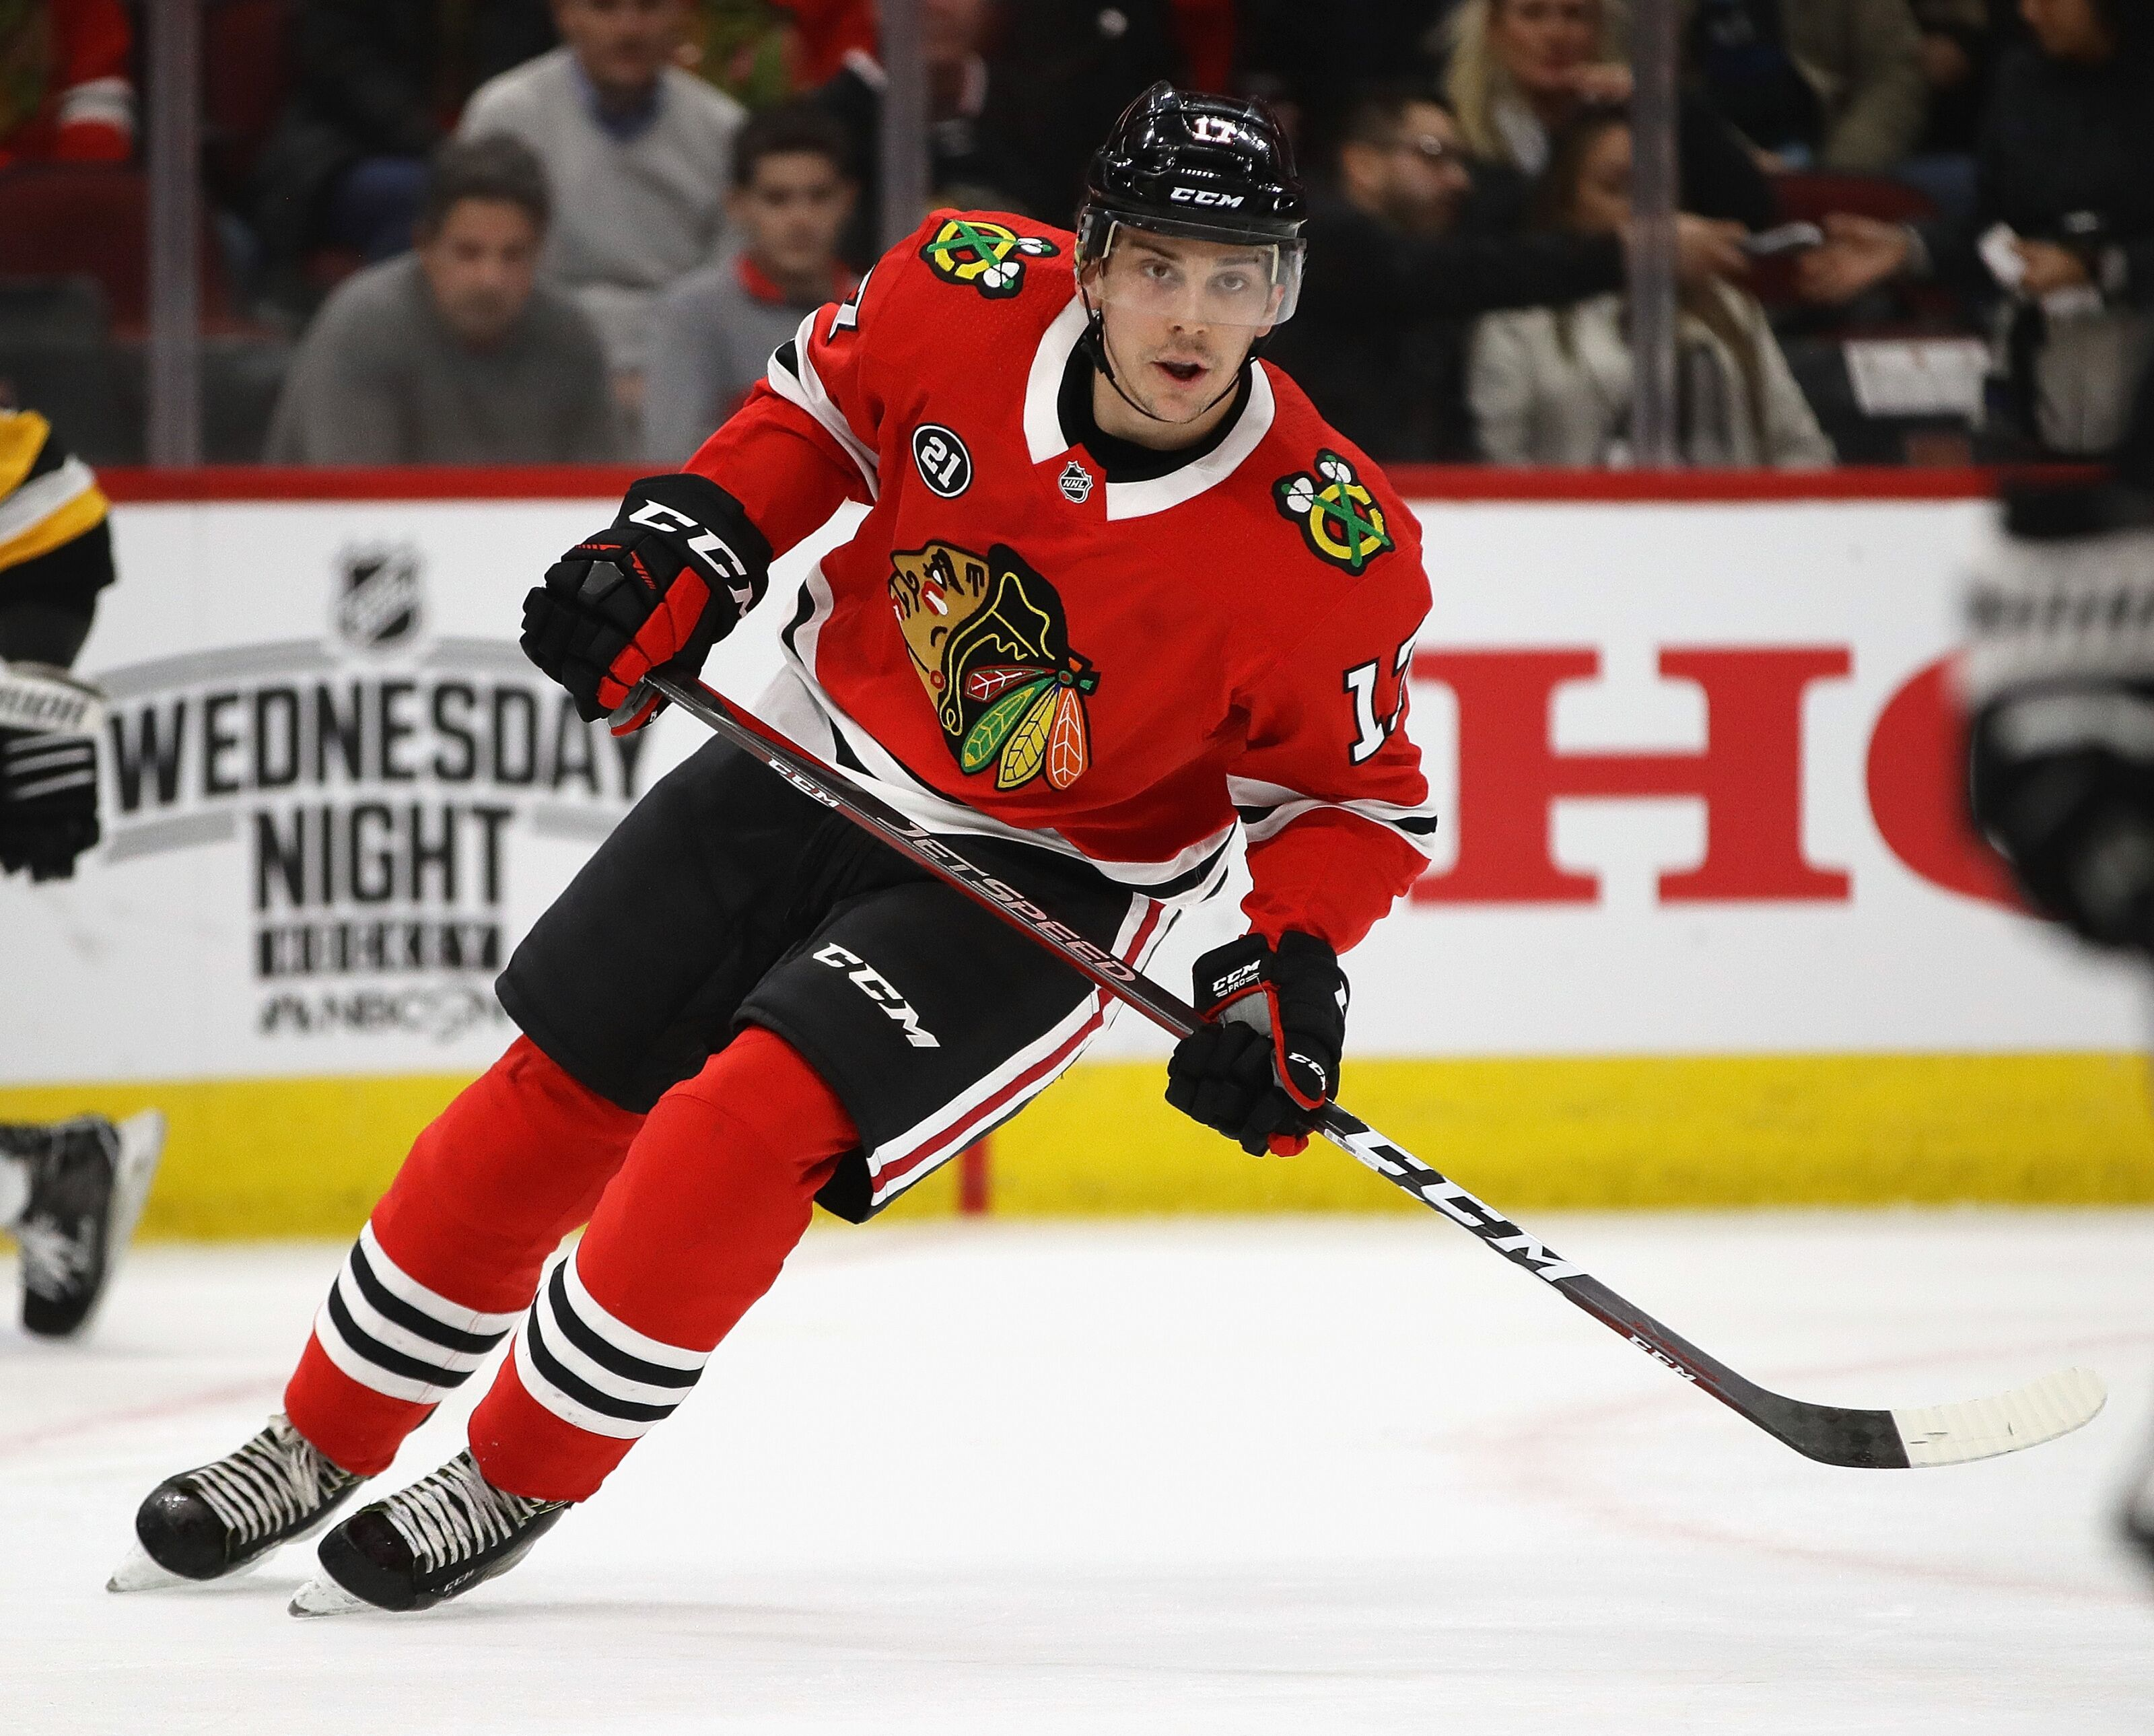 Chicago Blackhawks: Dylan Strome can have strong, immediate impact